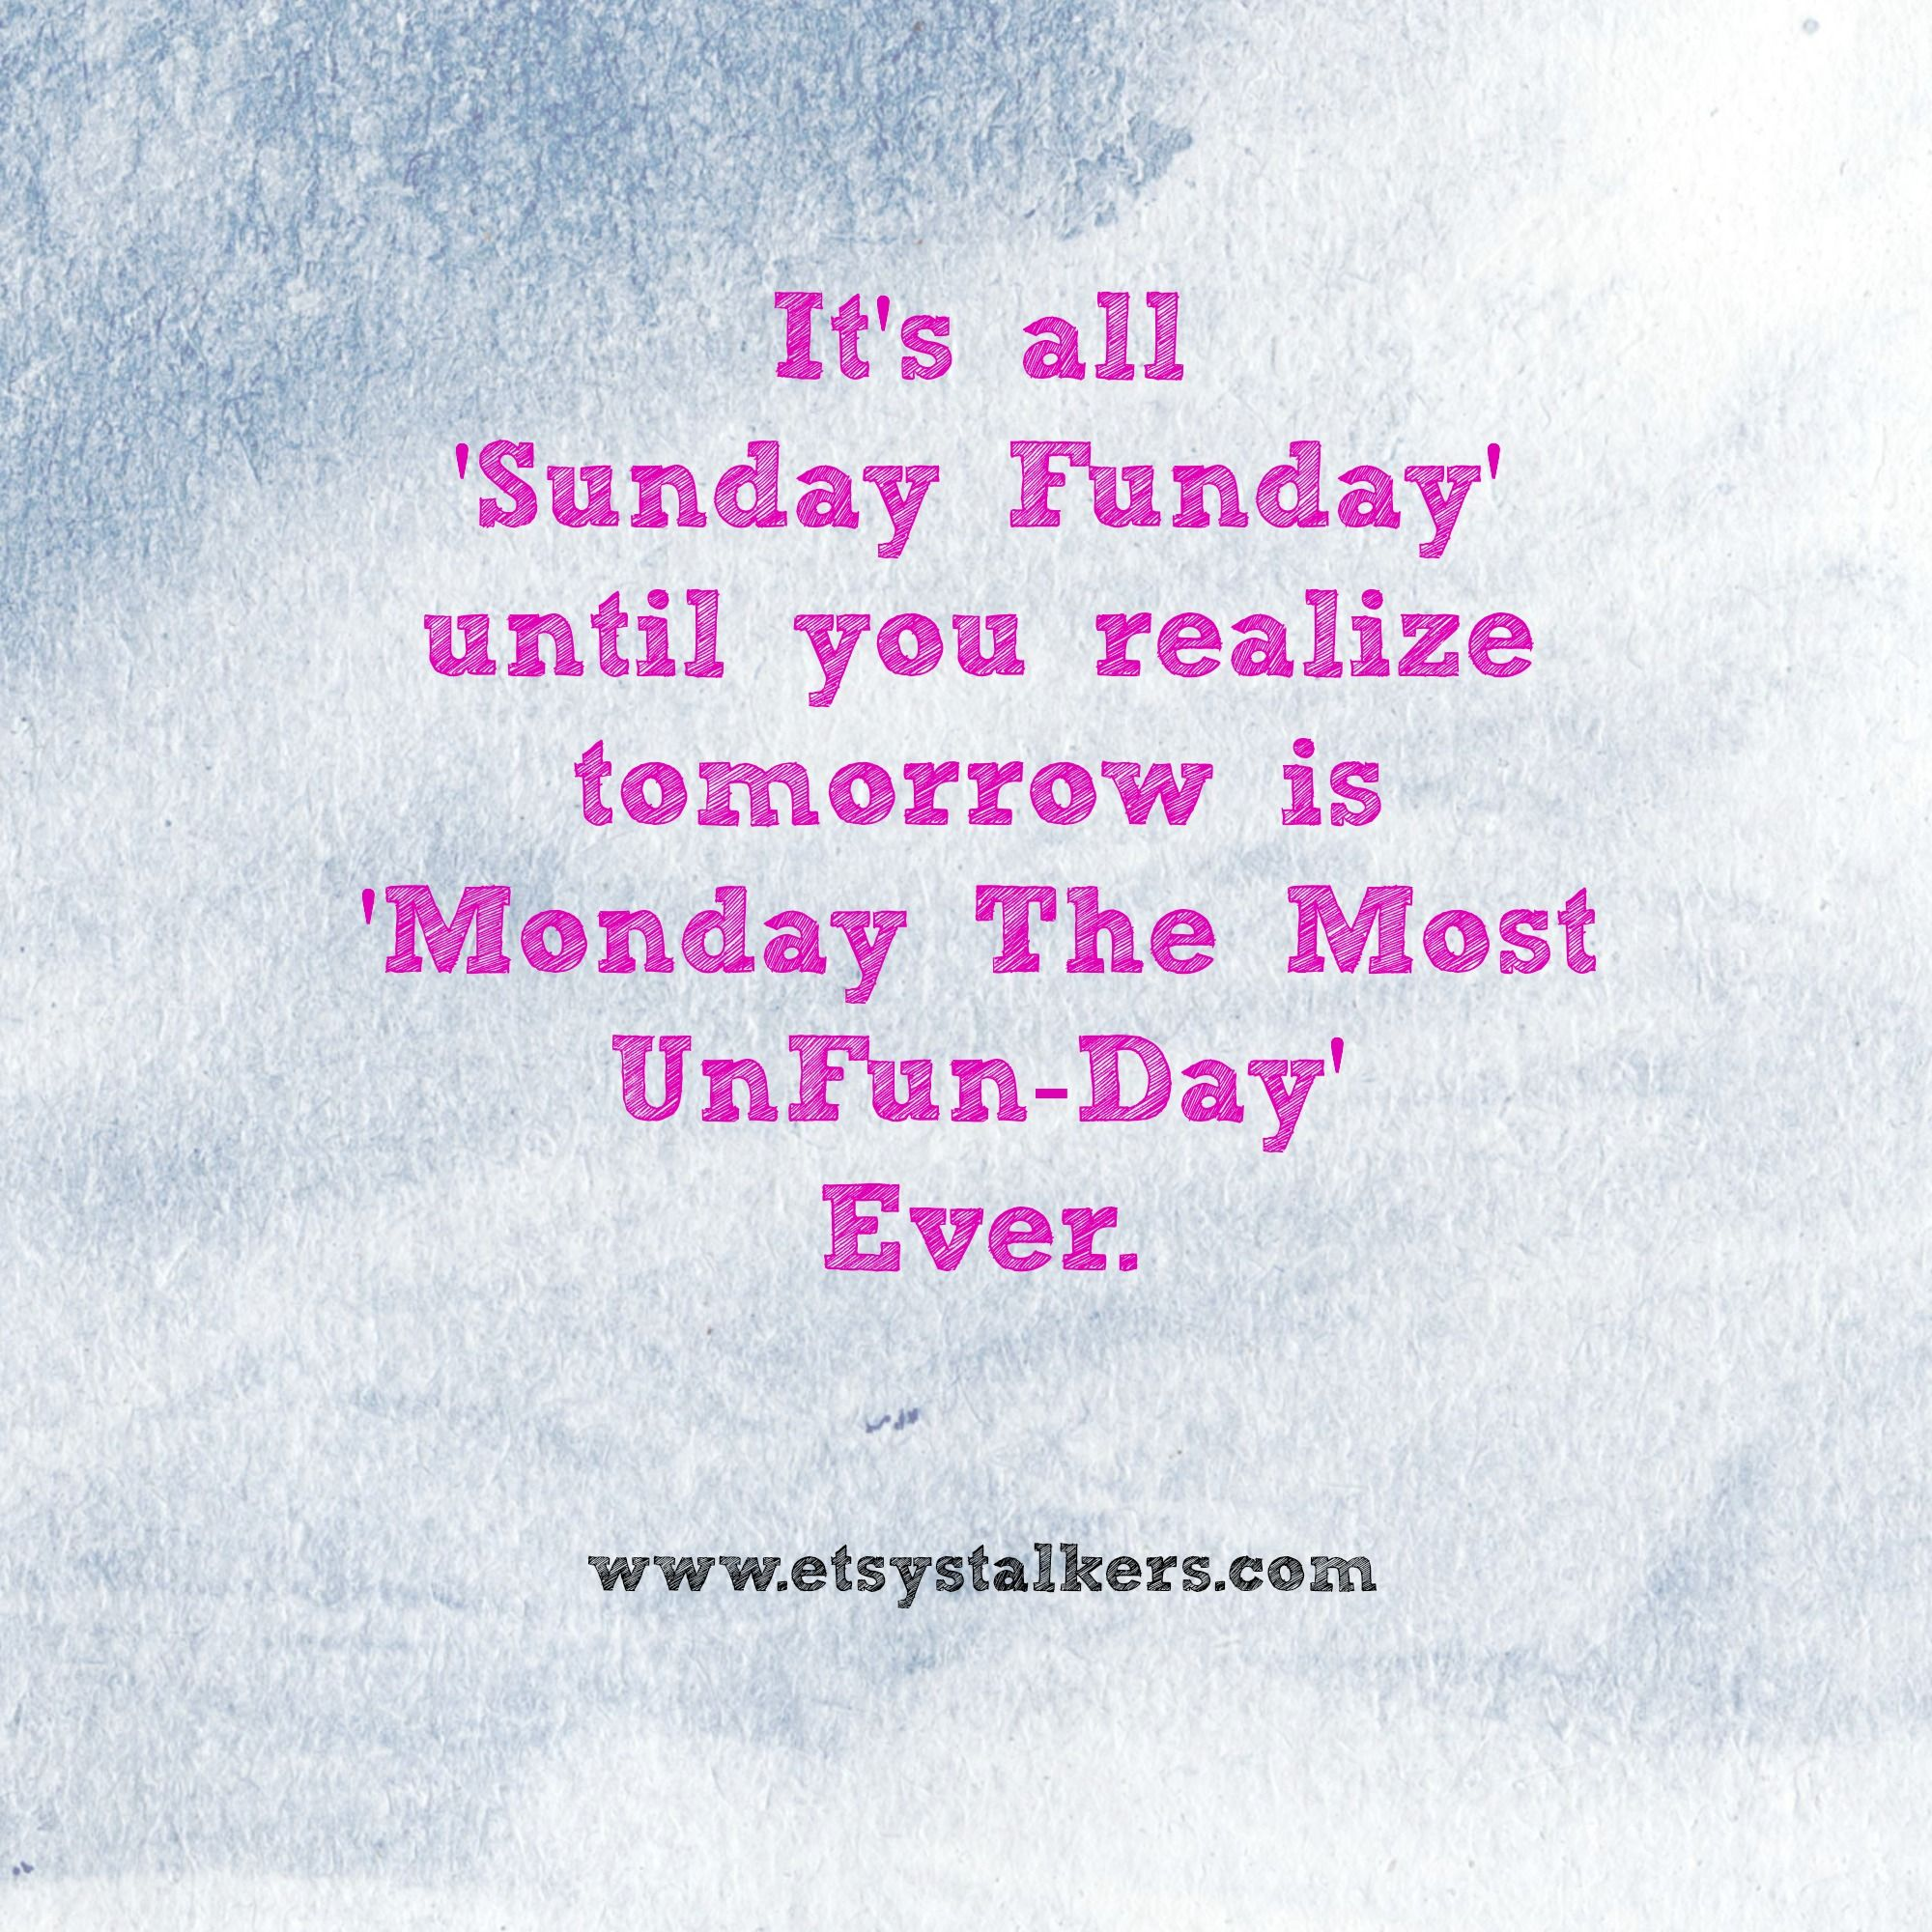 Sunday Funday Sunday Quotes Sunday Funday Quotes Sunday Quotes Funny